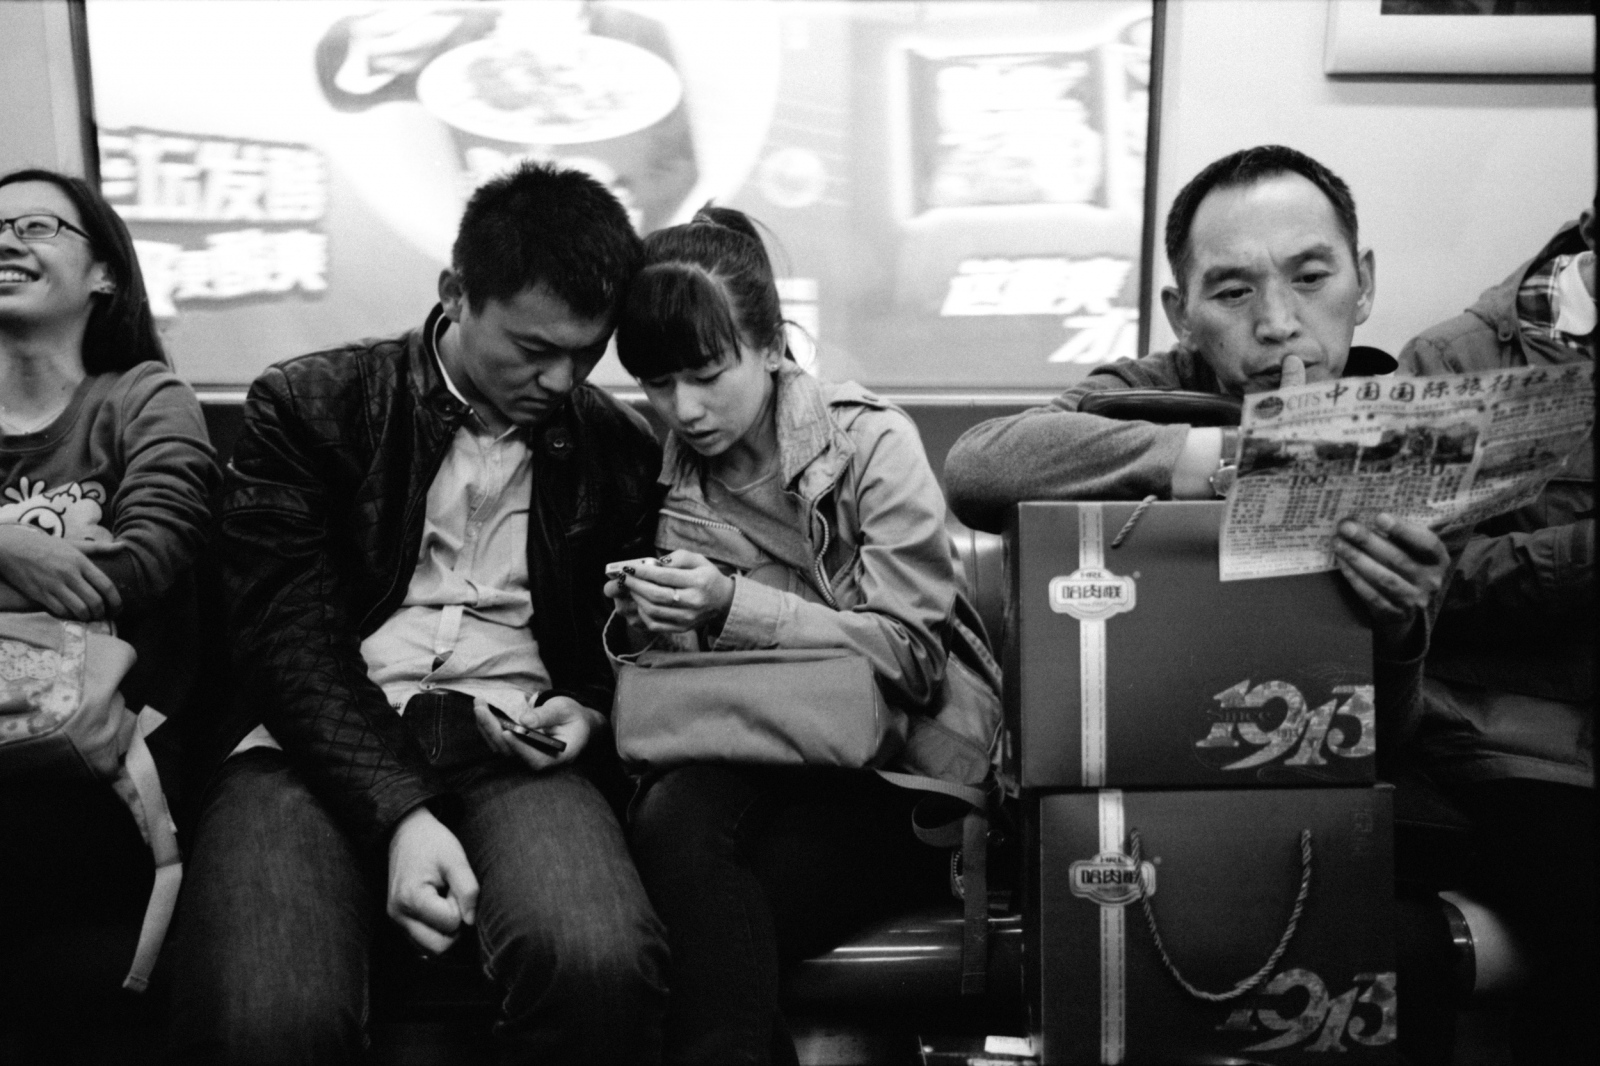 Lovers on a subway. Beijing, China. 2015